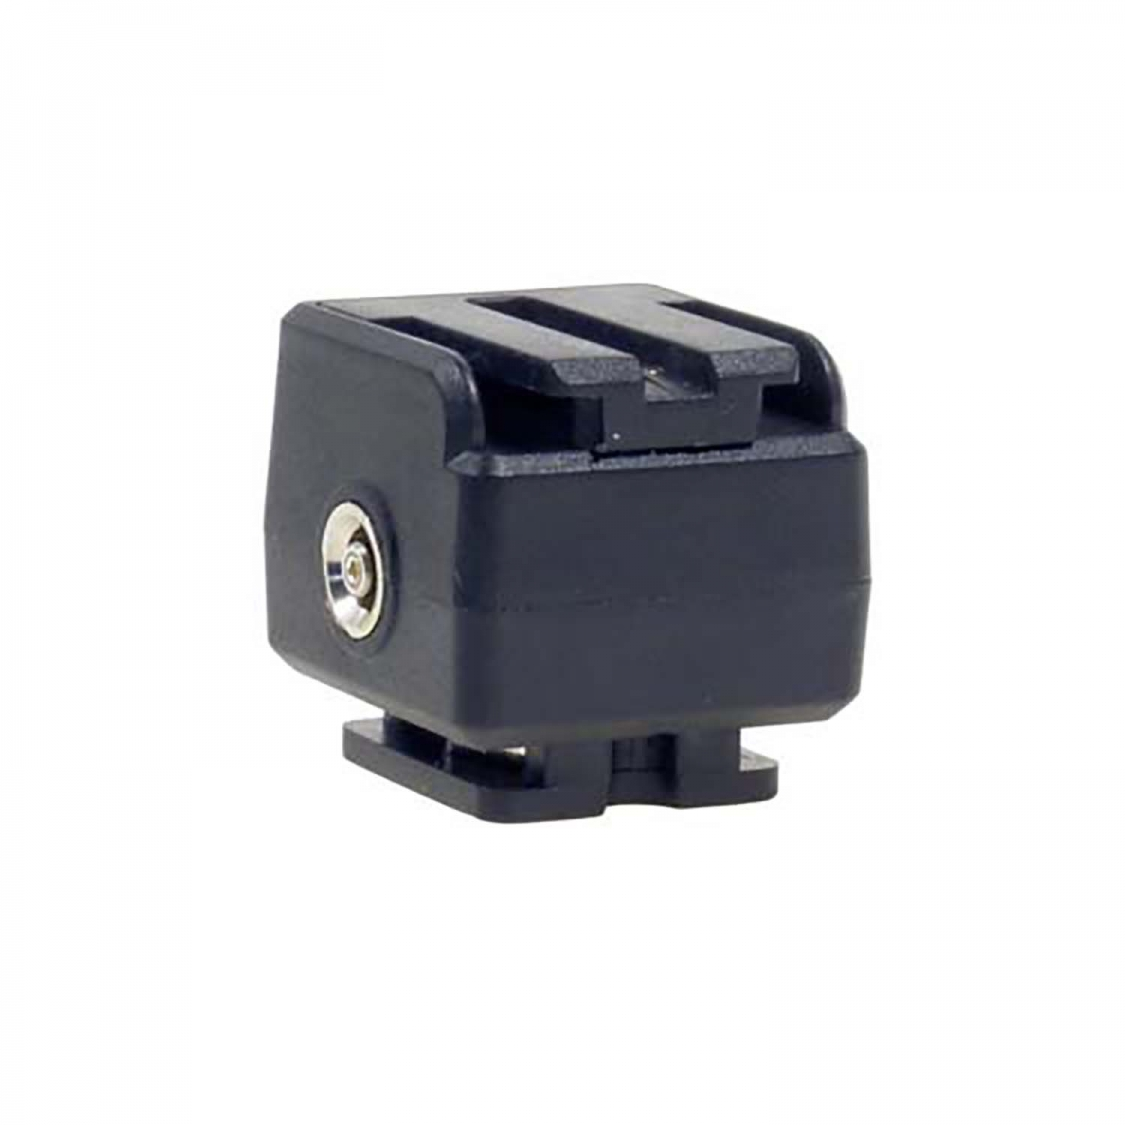 Promaster Shoe Adapter (Sony to standard Hot Shoe)